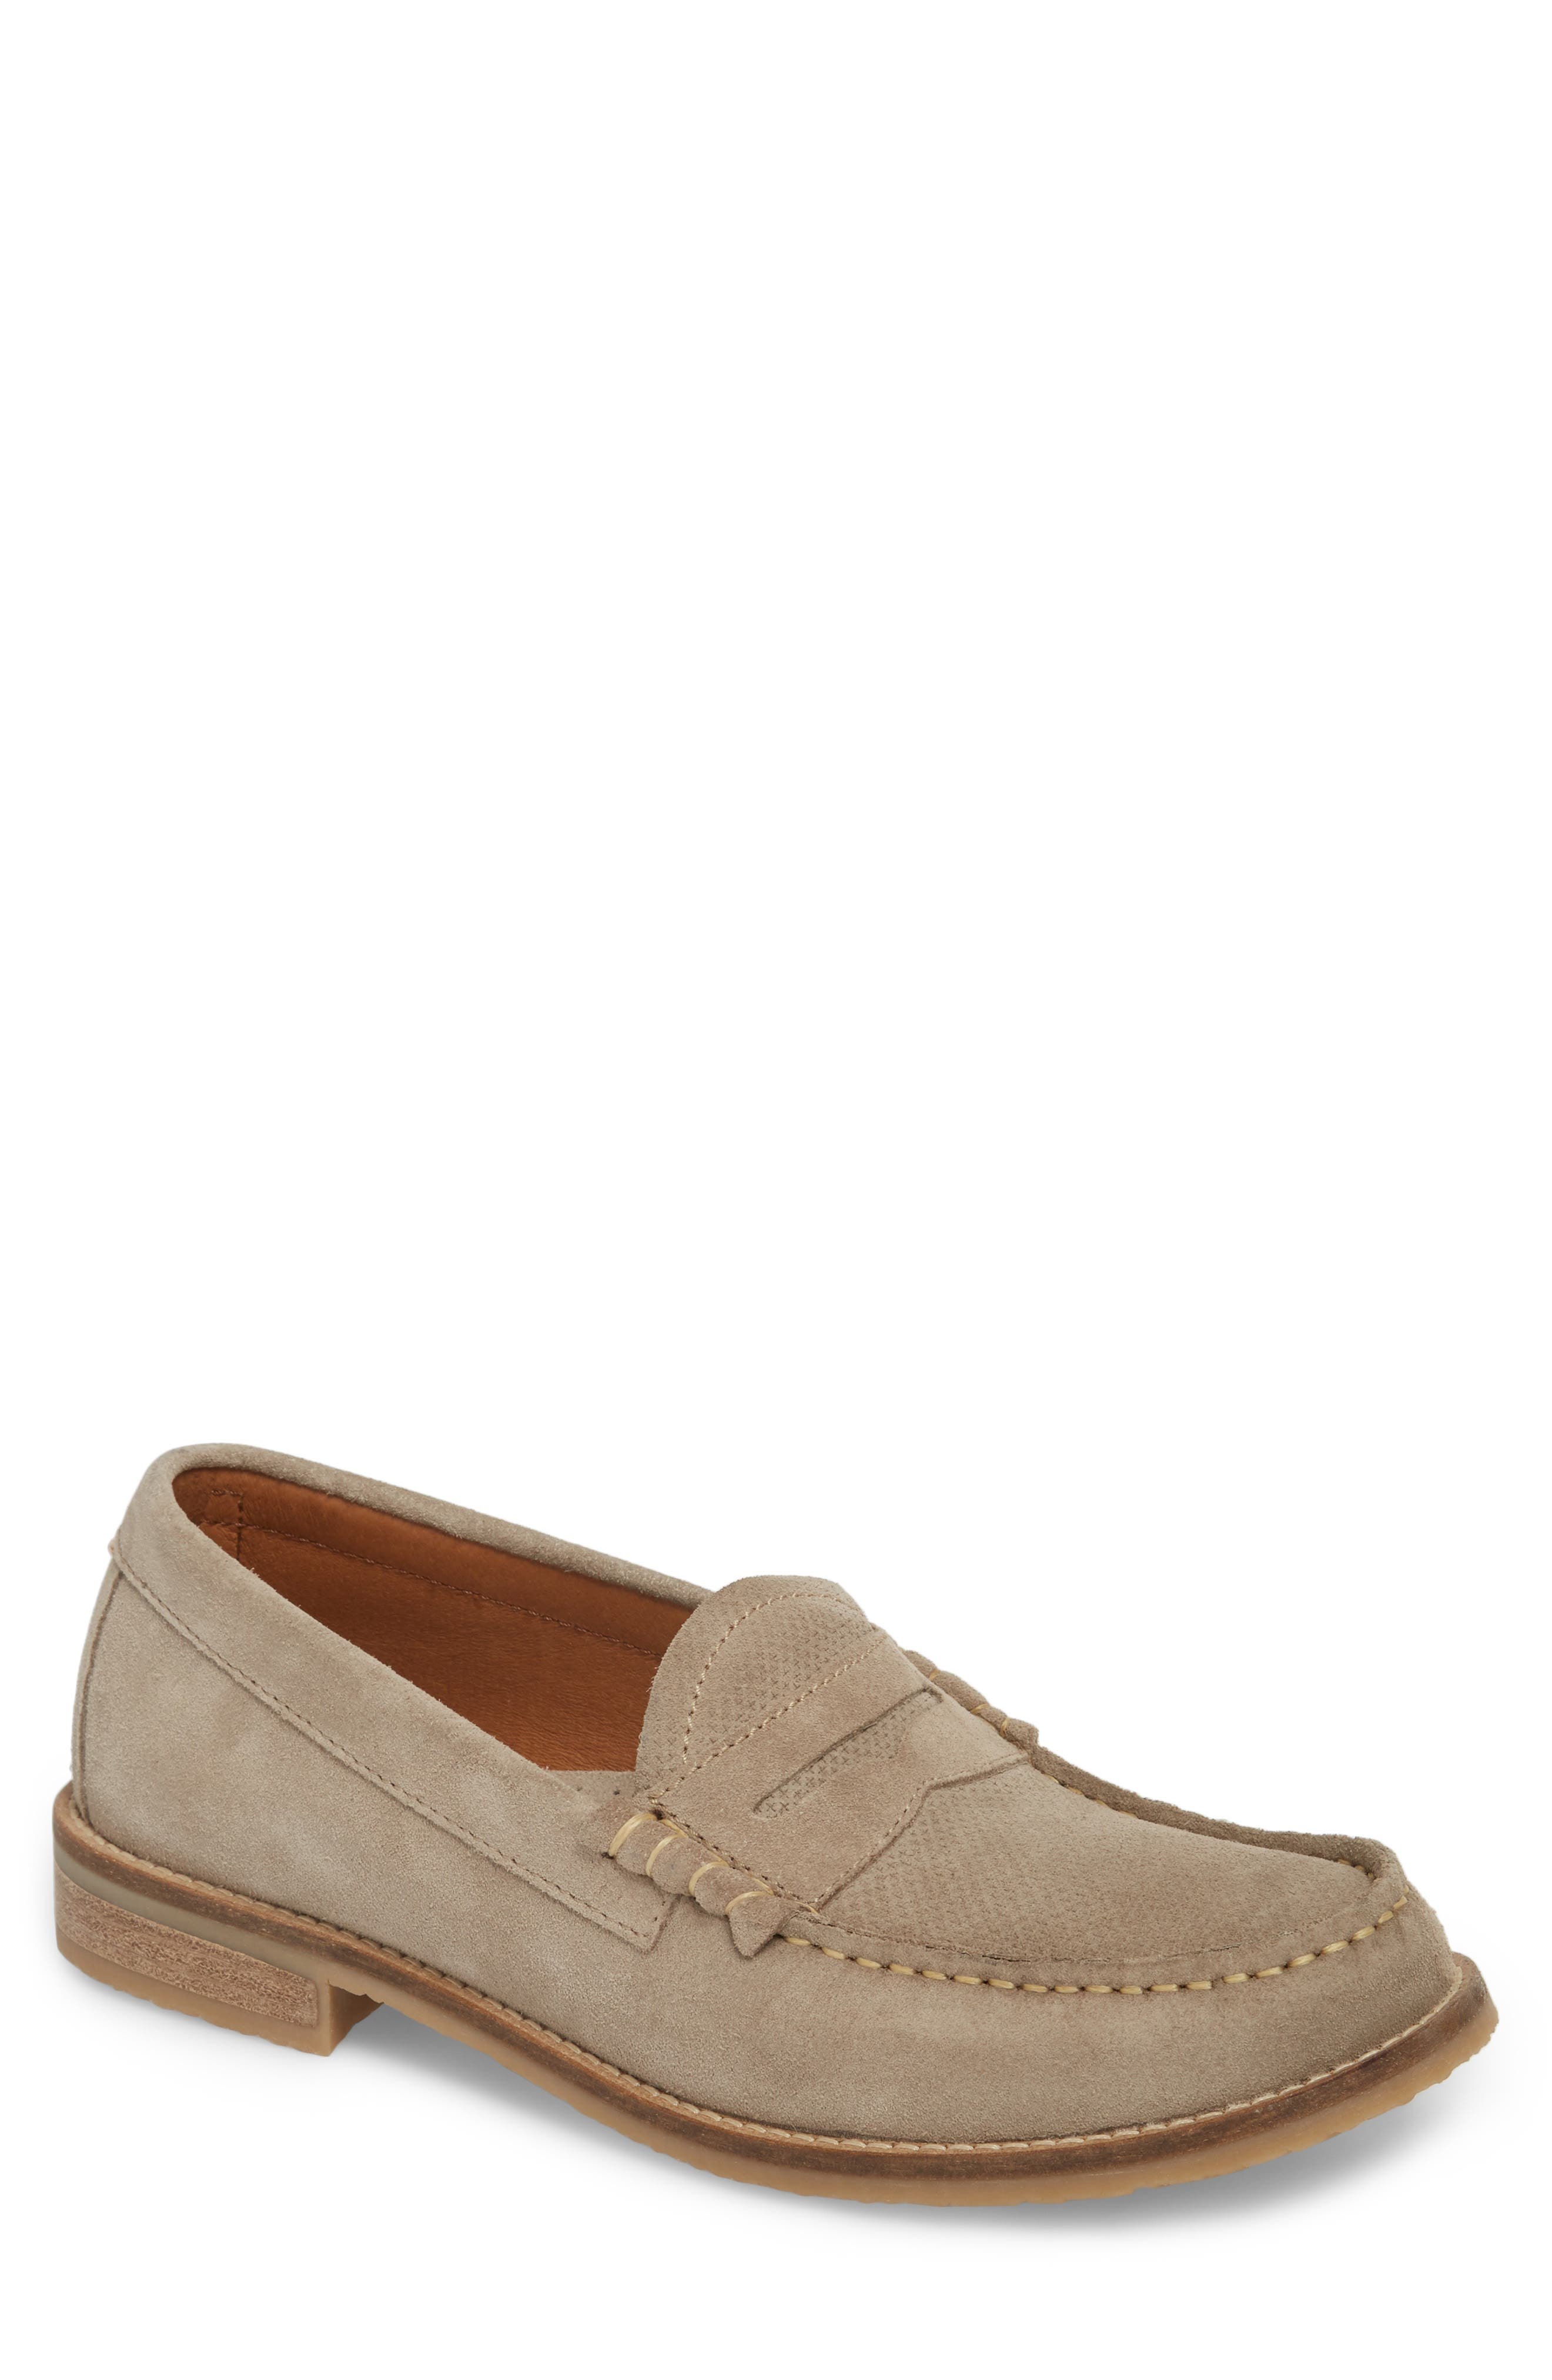 Wayne Textured Penny Loafer,                             Main thumbnail 1, color,                             EARTH BEIGE